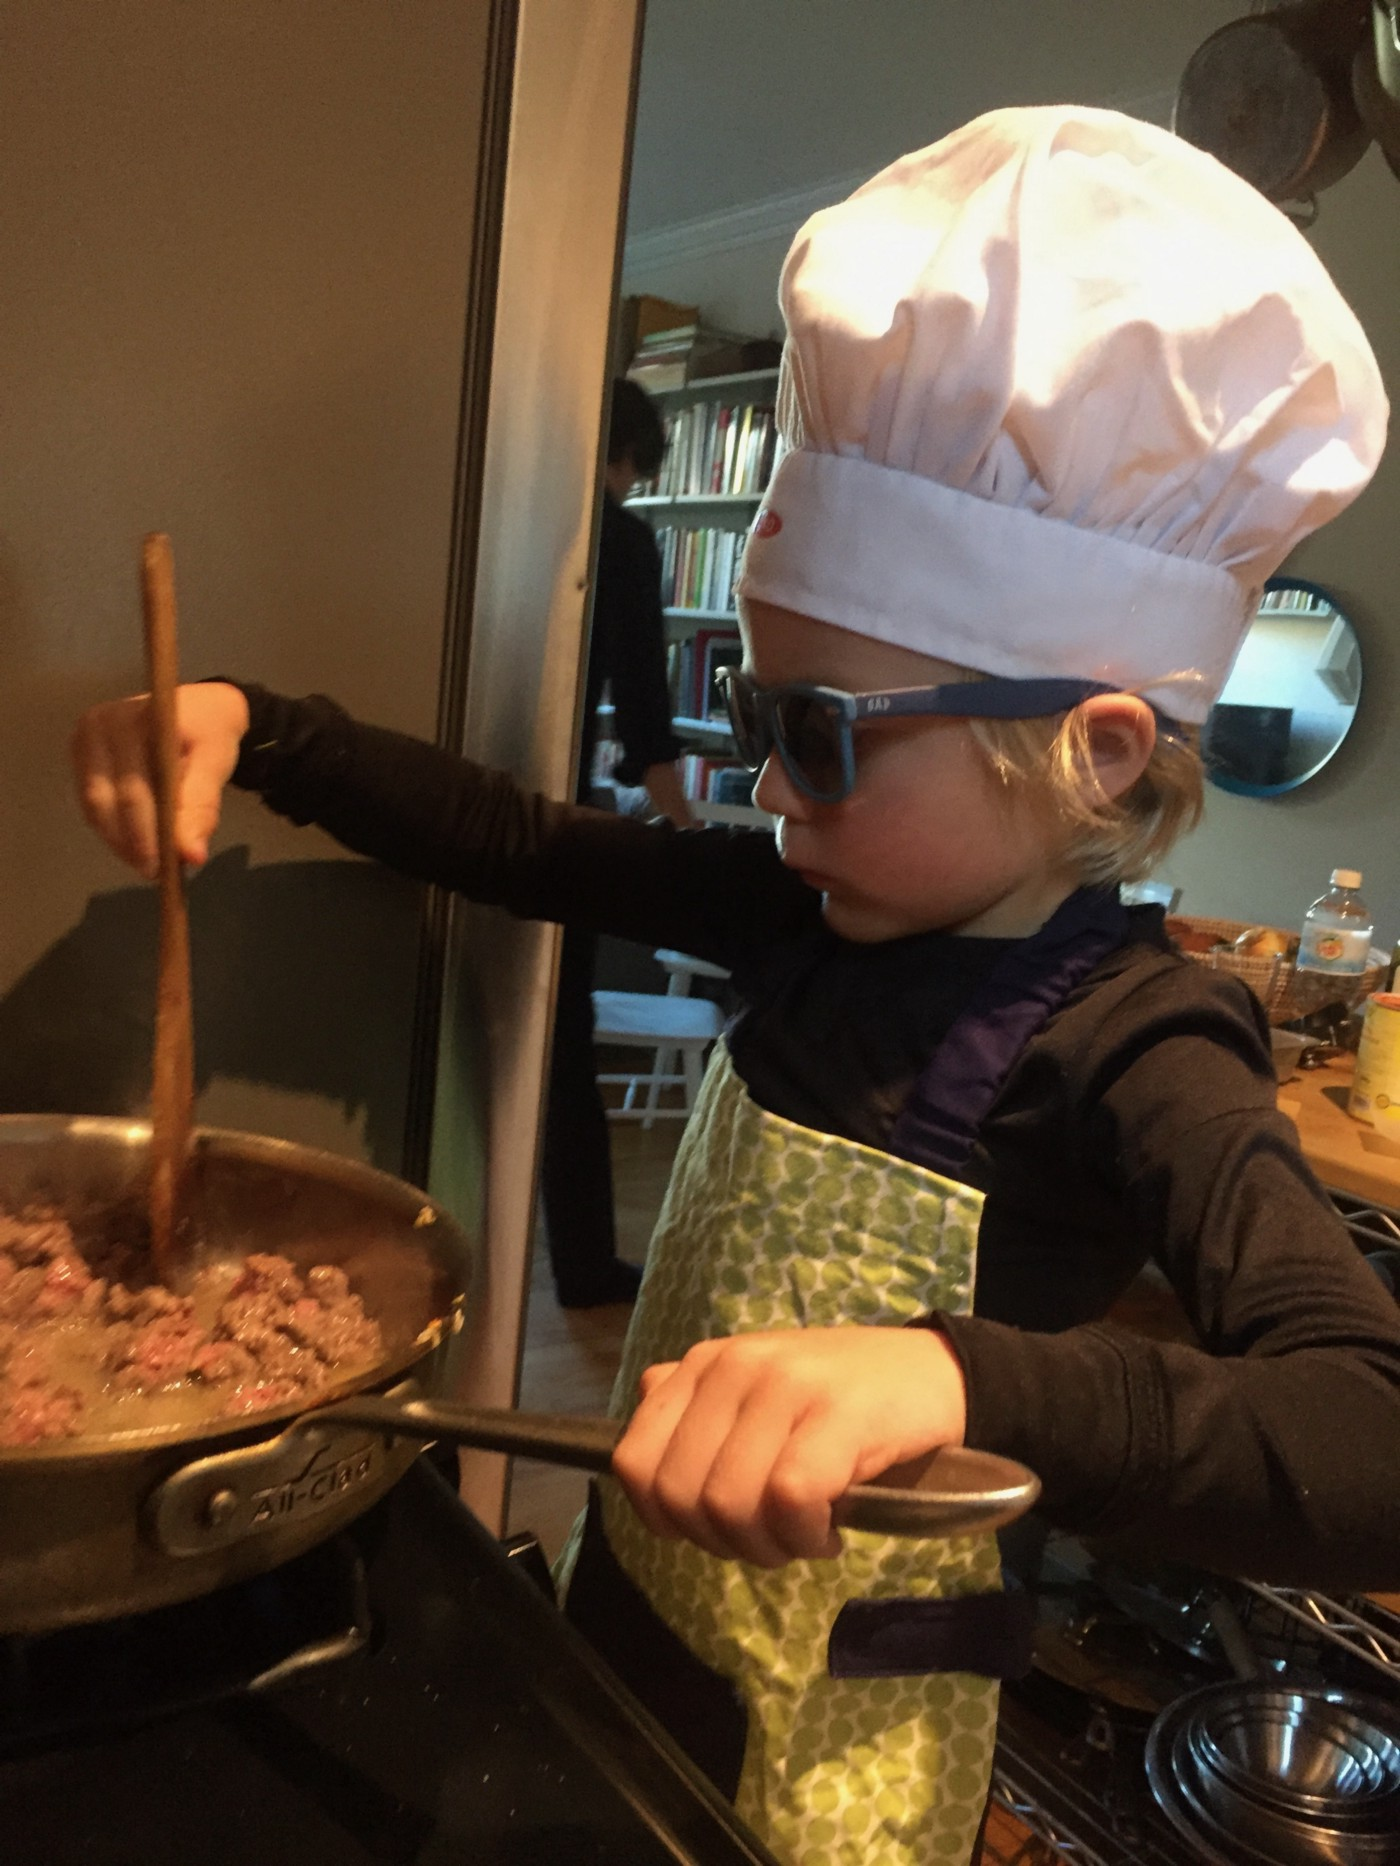 A kid with a chef's hat, stirring something in a pot.